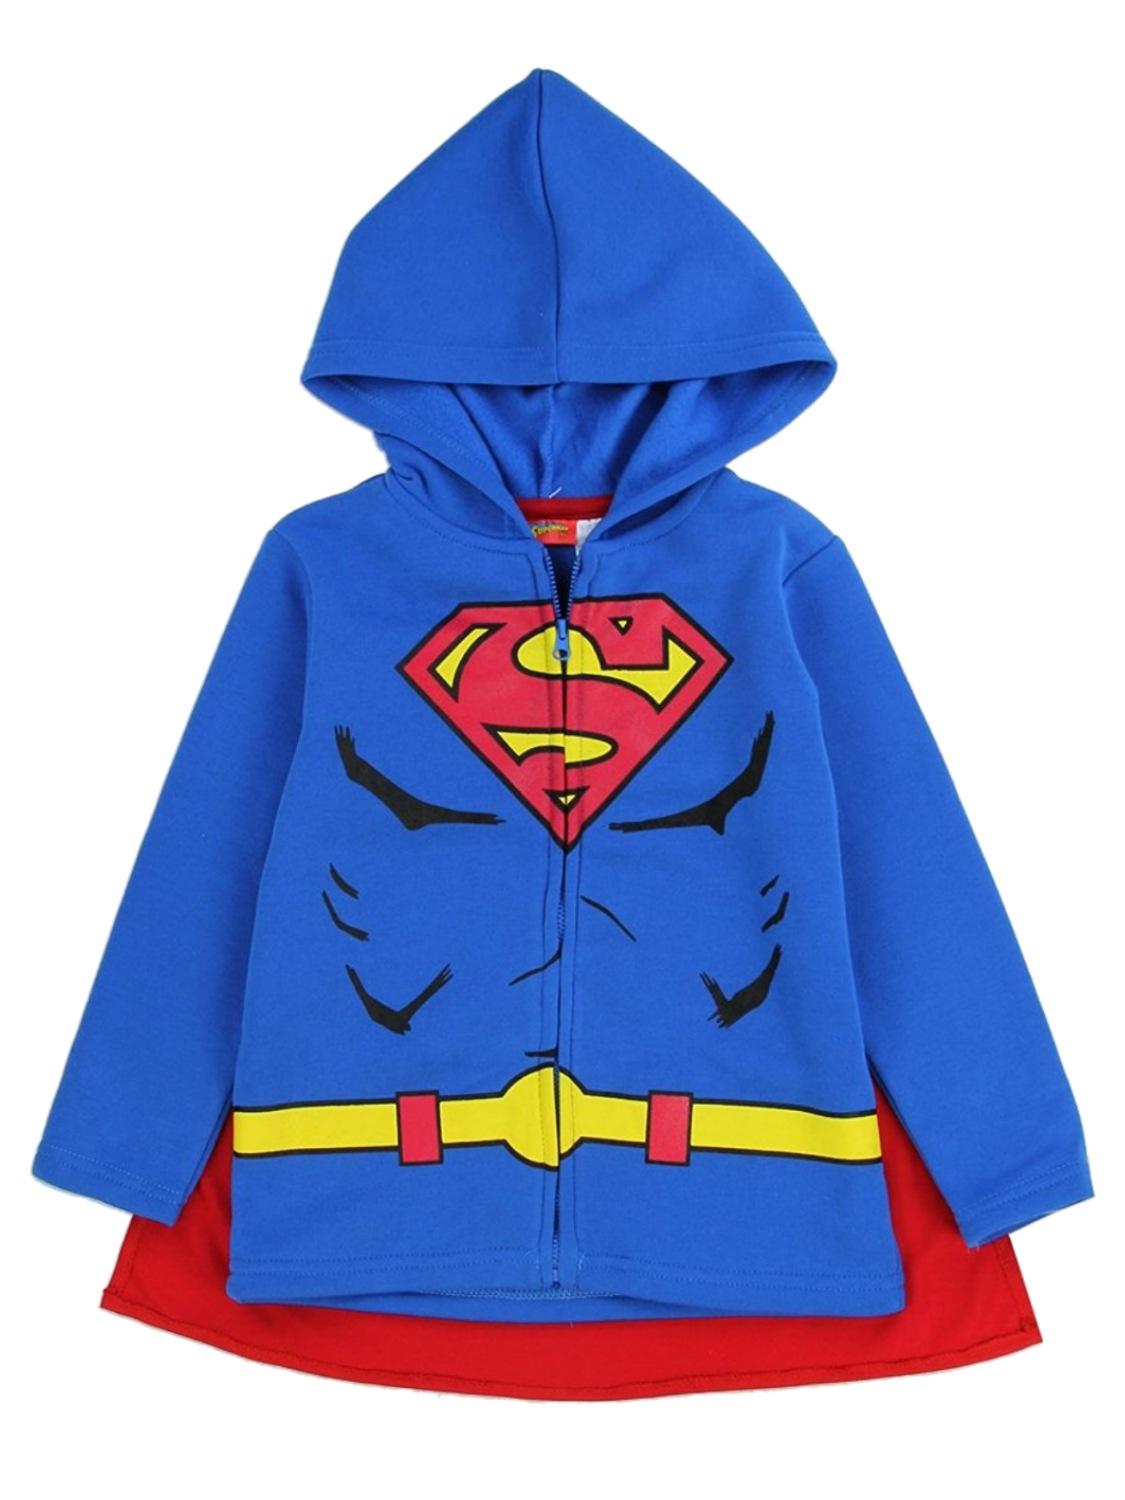 DC Comics Toddler Boys Fleece Superman Zip-Front Caped Hoodie Sweatshirt